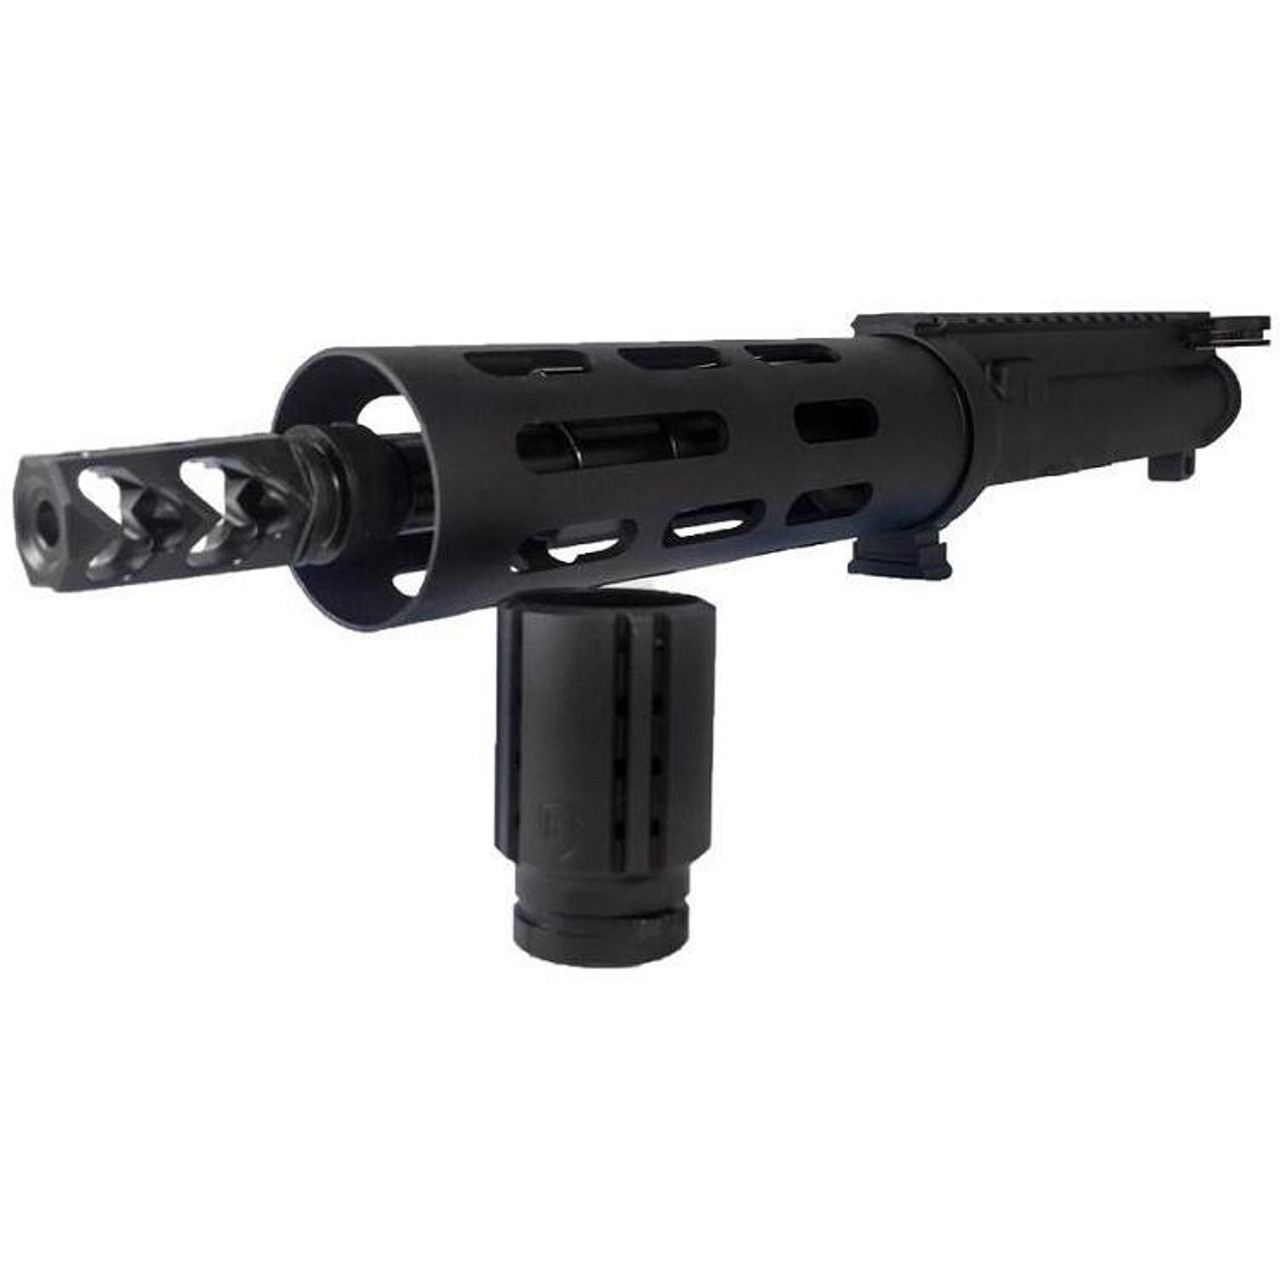 "MDX Arms 7.5"" DOLOS QD Takedown Complete Upper with Fortis Brake/Blast Shield Kit ( .223/5.56/300BO)"